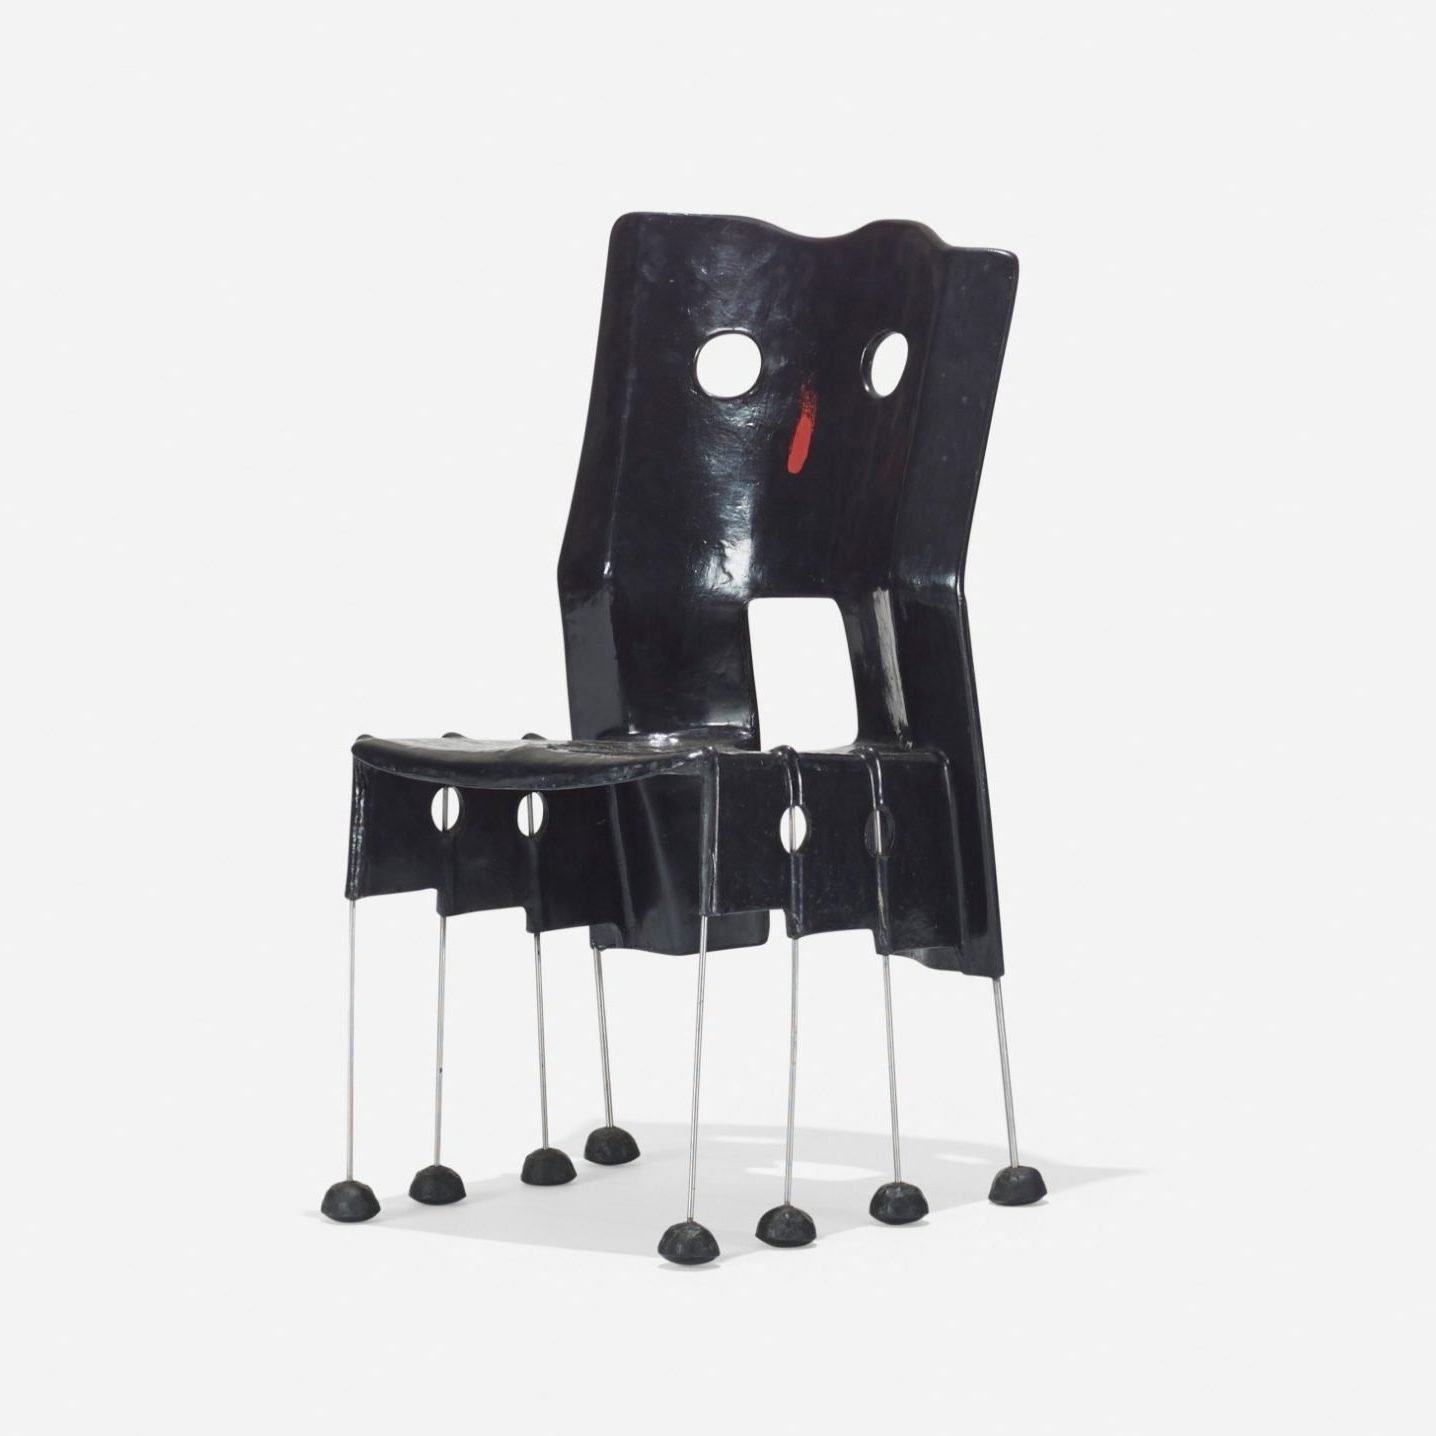 Vitra chair by Italian designer Gaetano Pesce copy